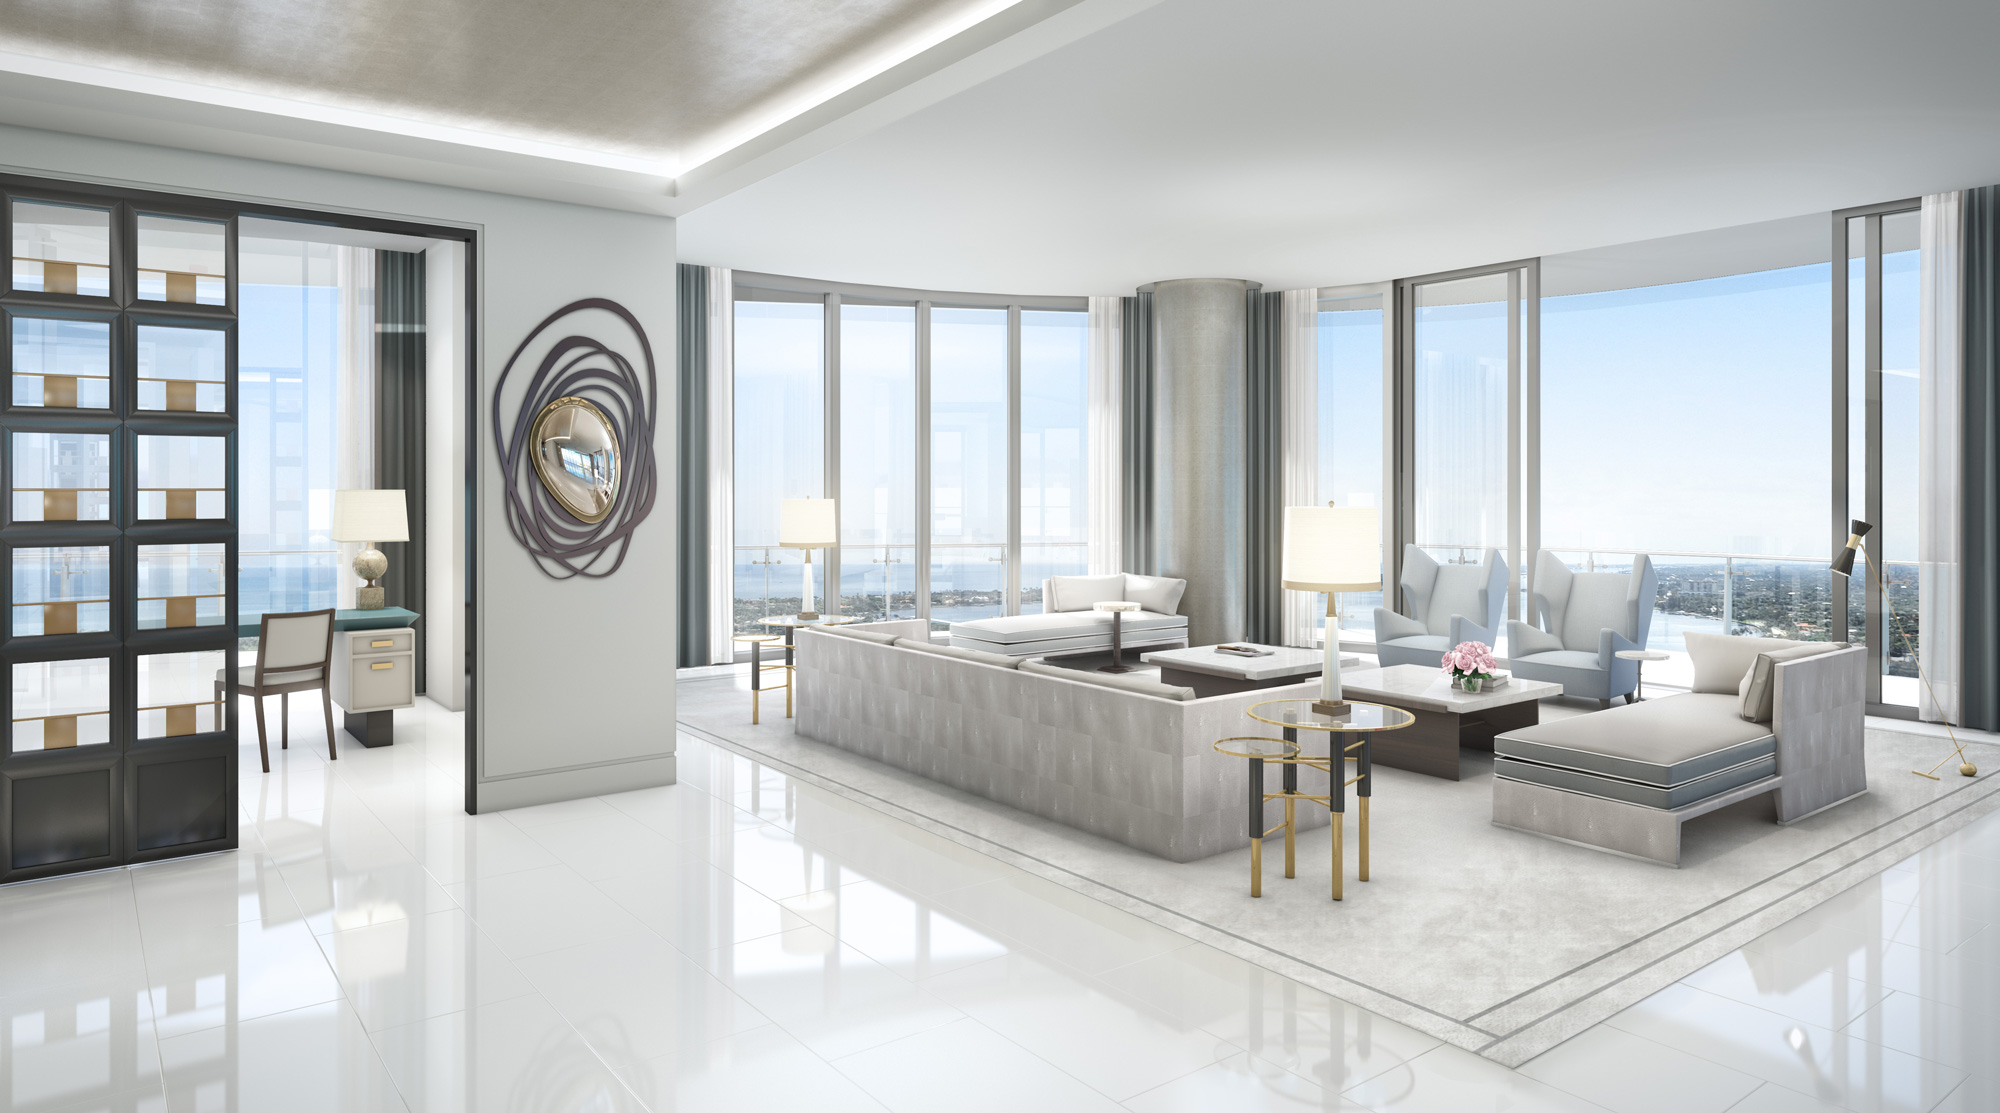 Palm Beach Condos For Sale The Bristol Palm Beach â Residences